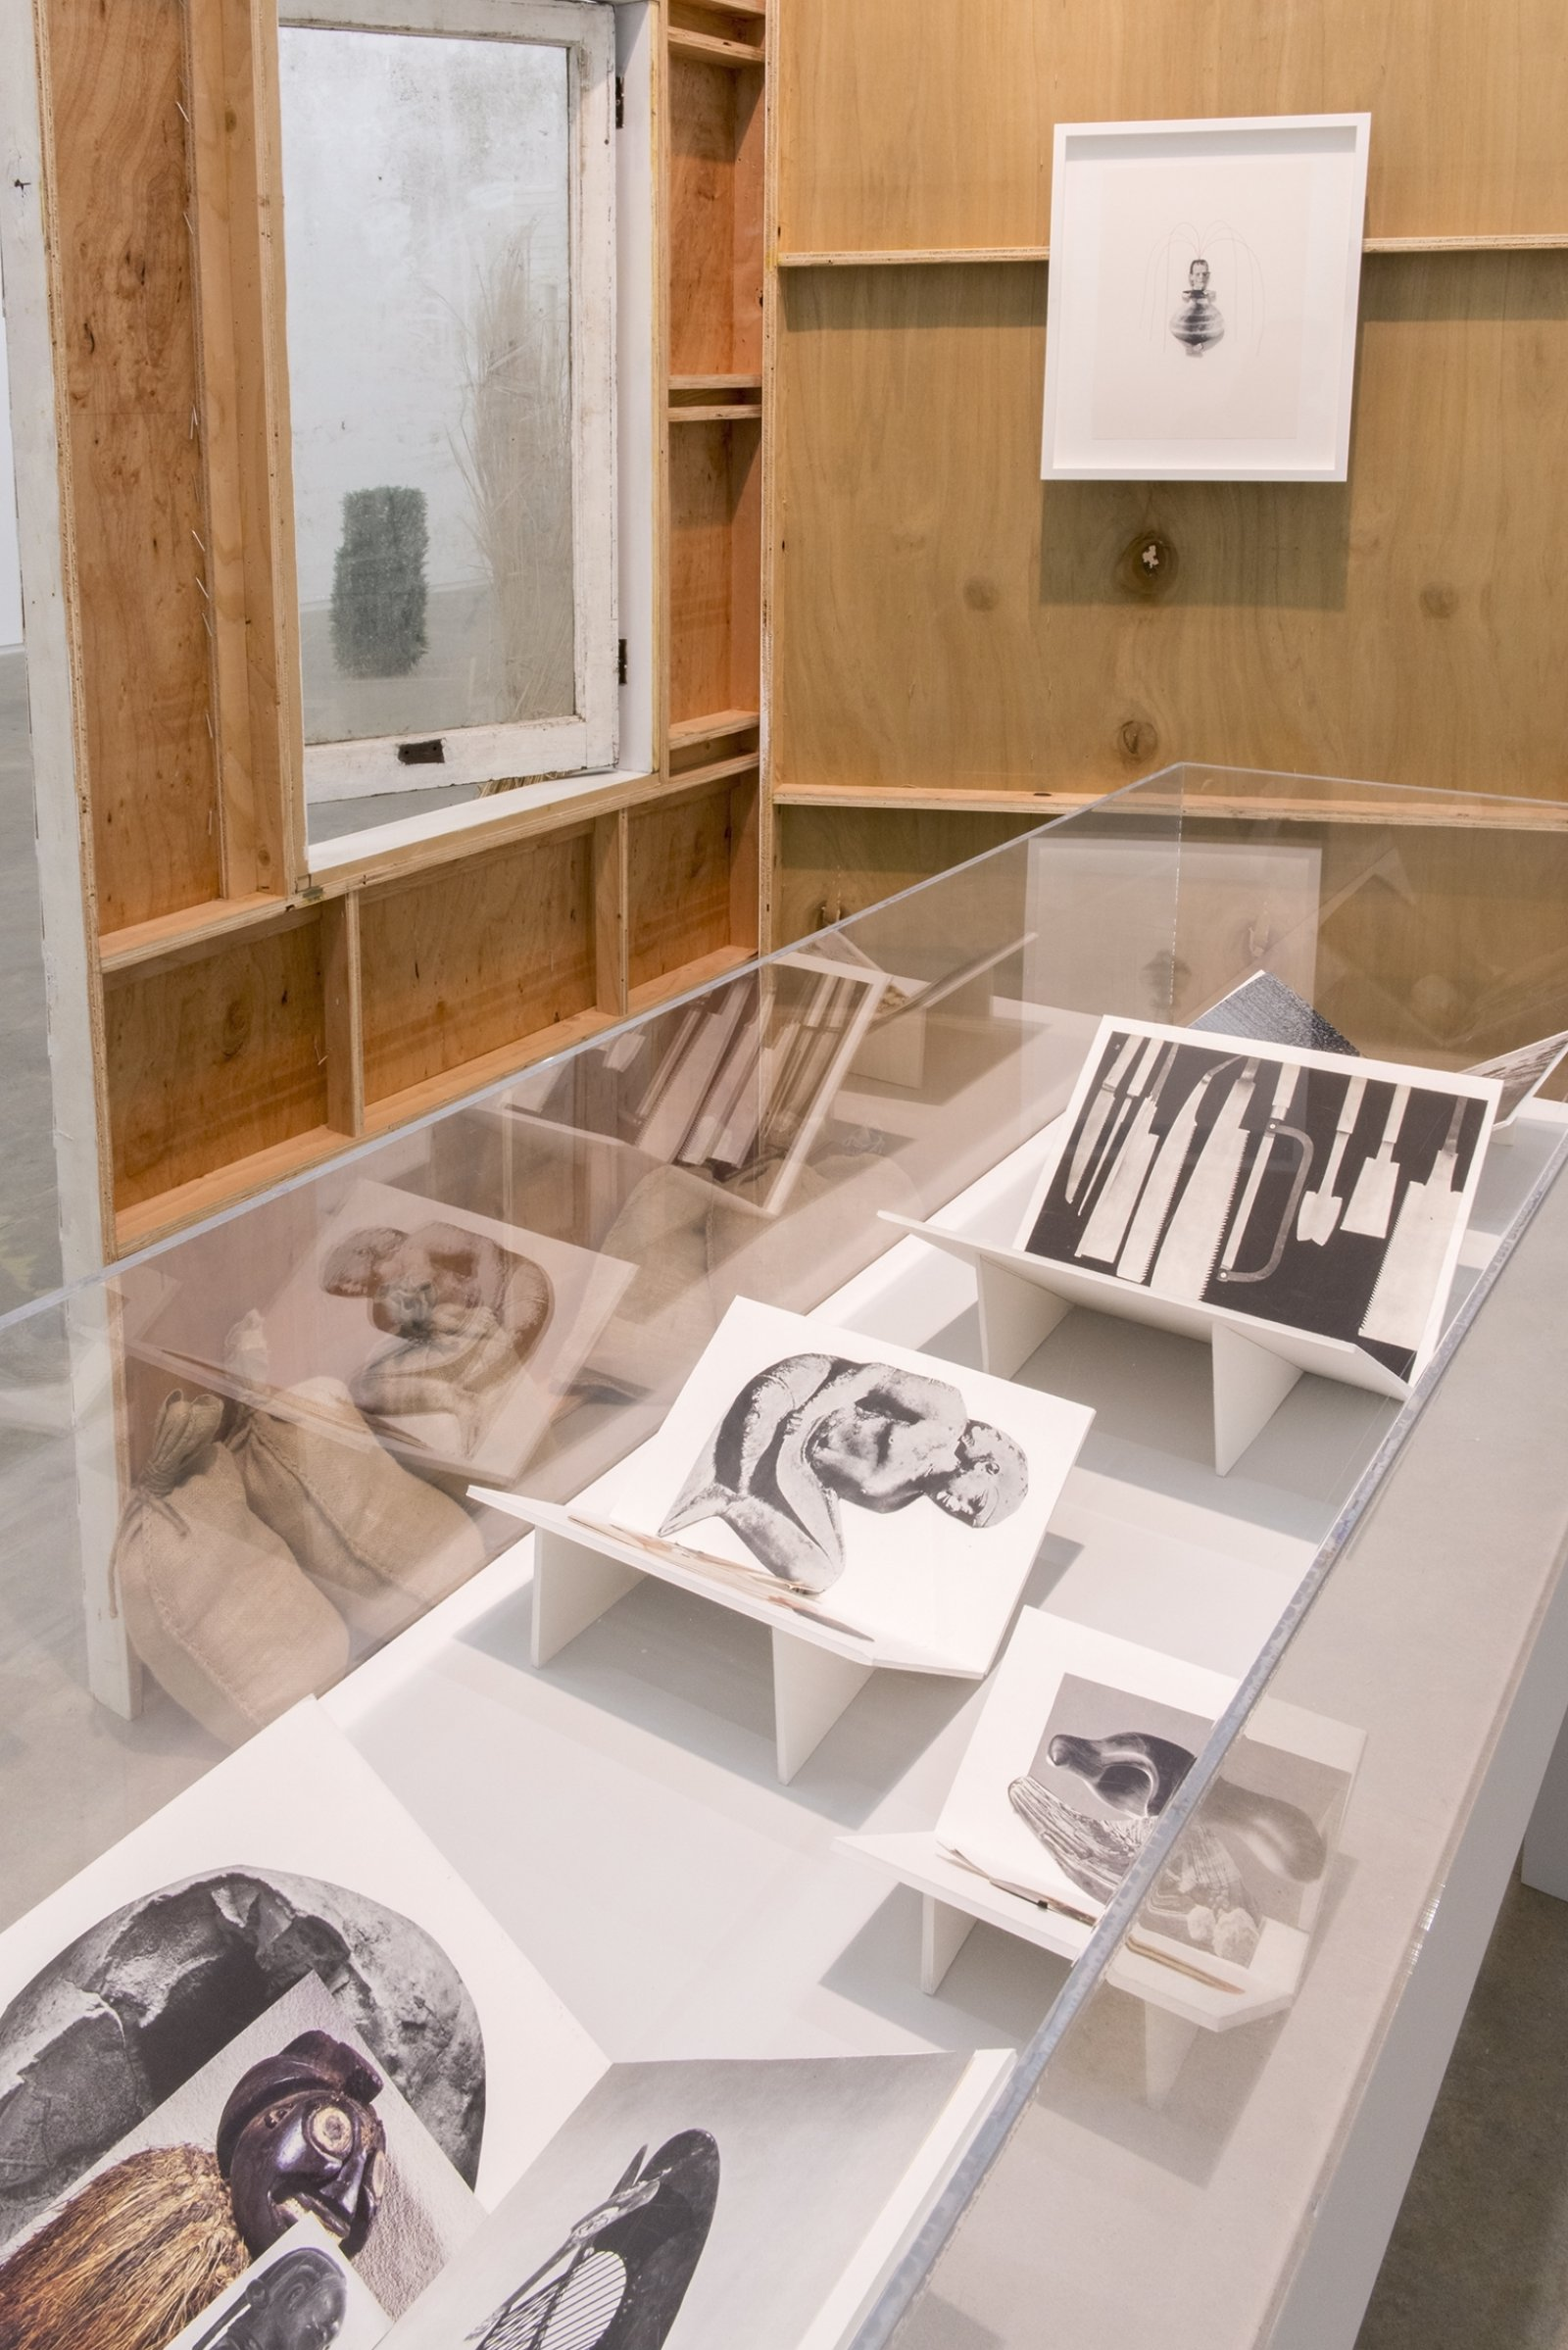 Geoffrey Farmer,Workbookswith When I got fired from that Beckett Play (Fountain)(detail),2014, vitrine with 5 cut-outs collaged on foamcore, 2 wooden wall façades, paint, window, sandbags, framed cut-outs and ink mounted on paper, dimensions variable